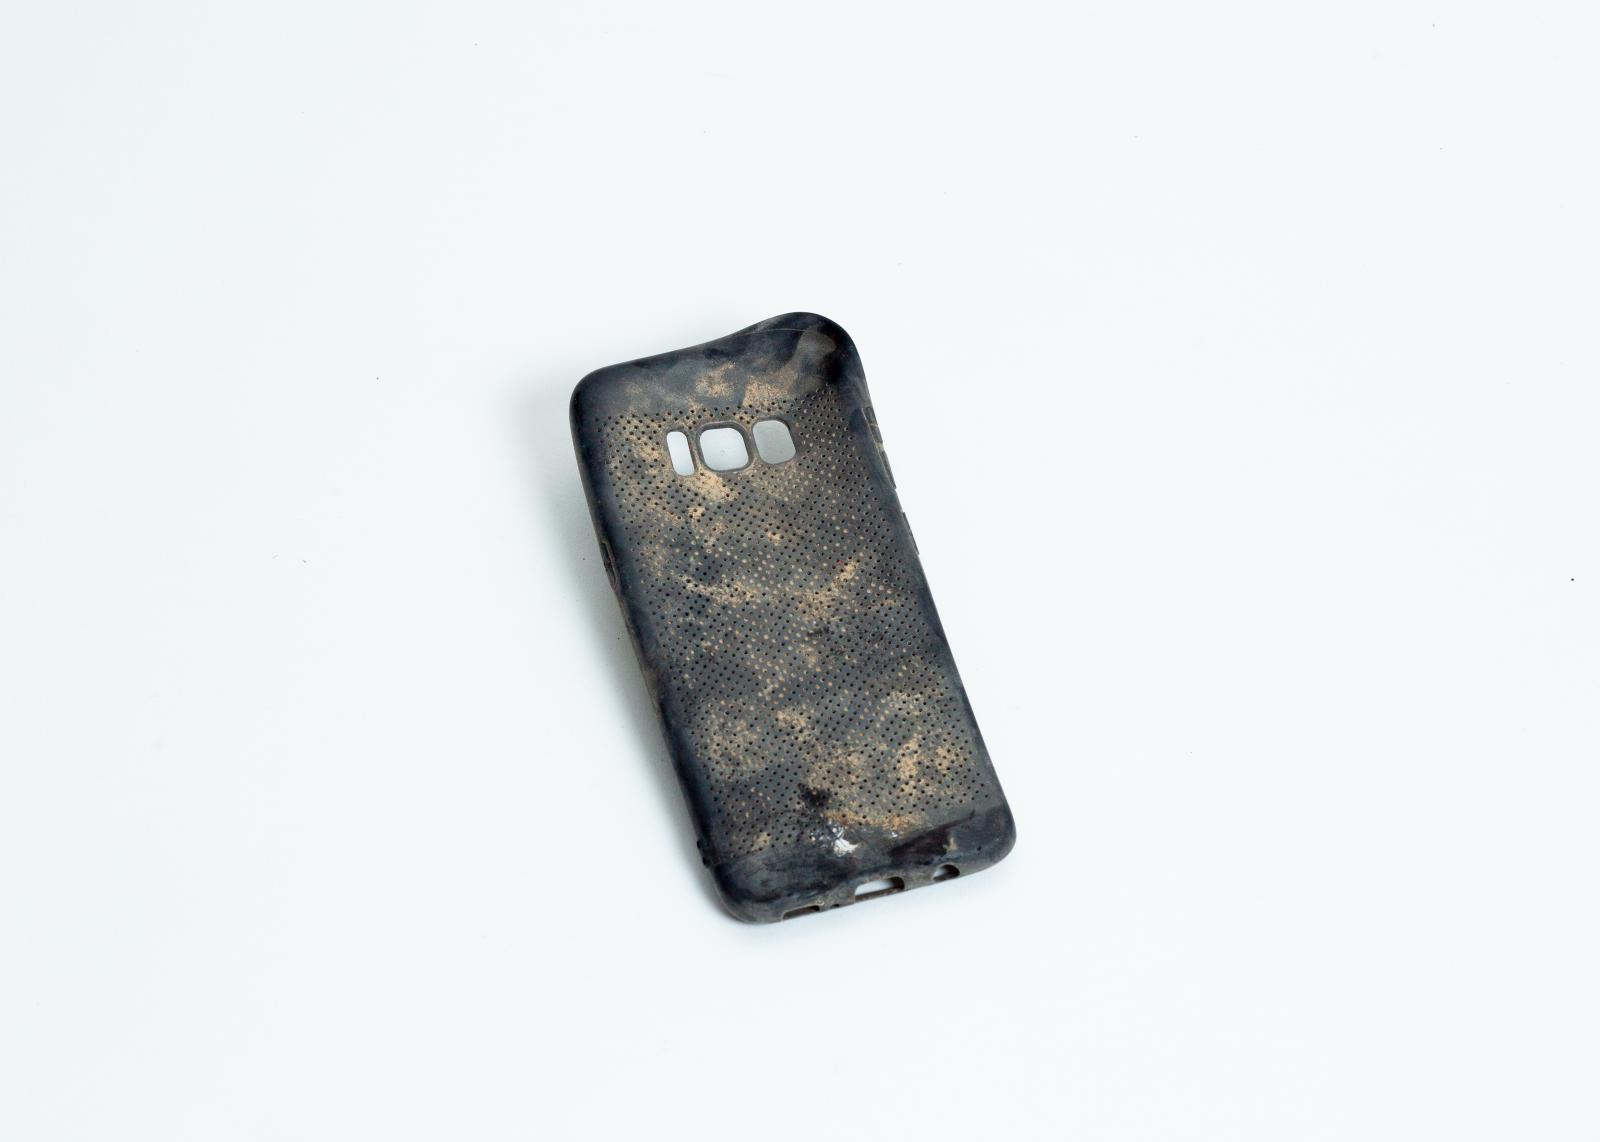 A phone case. The network quality in Moria was low and there was only one Wifi spot, which was often overstrained. For many, however, using their phone was the main activity. Either to keep in contact with friends and family back home or simply to kill time.